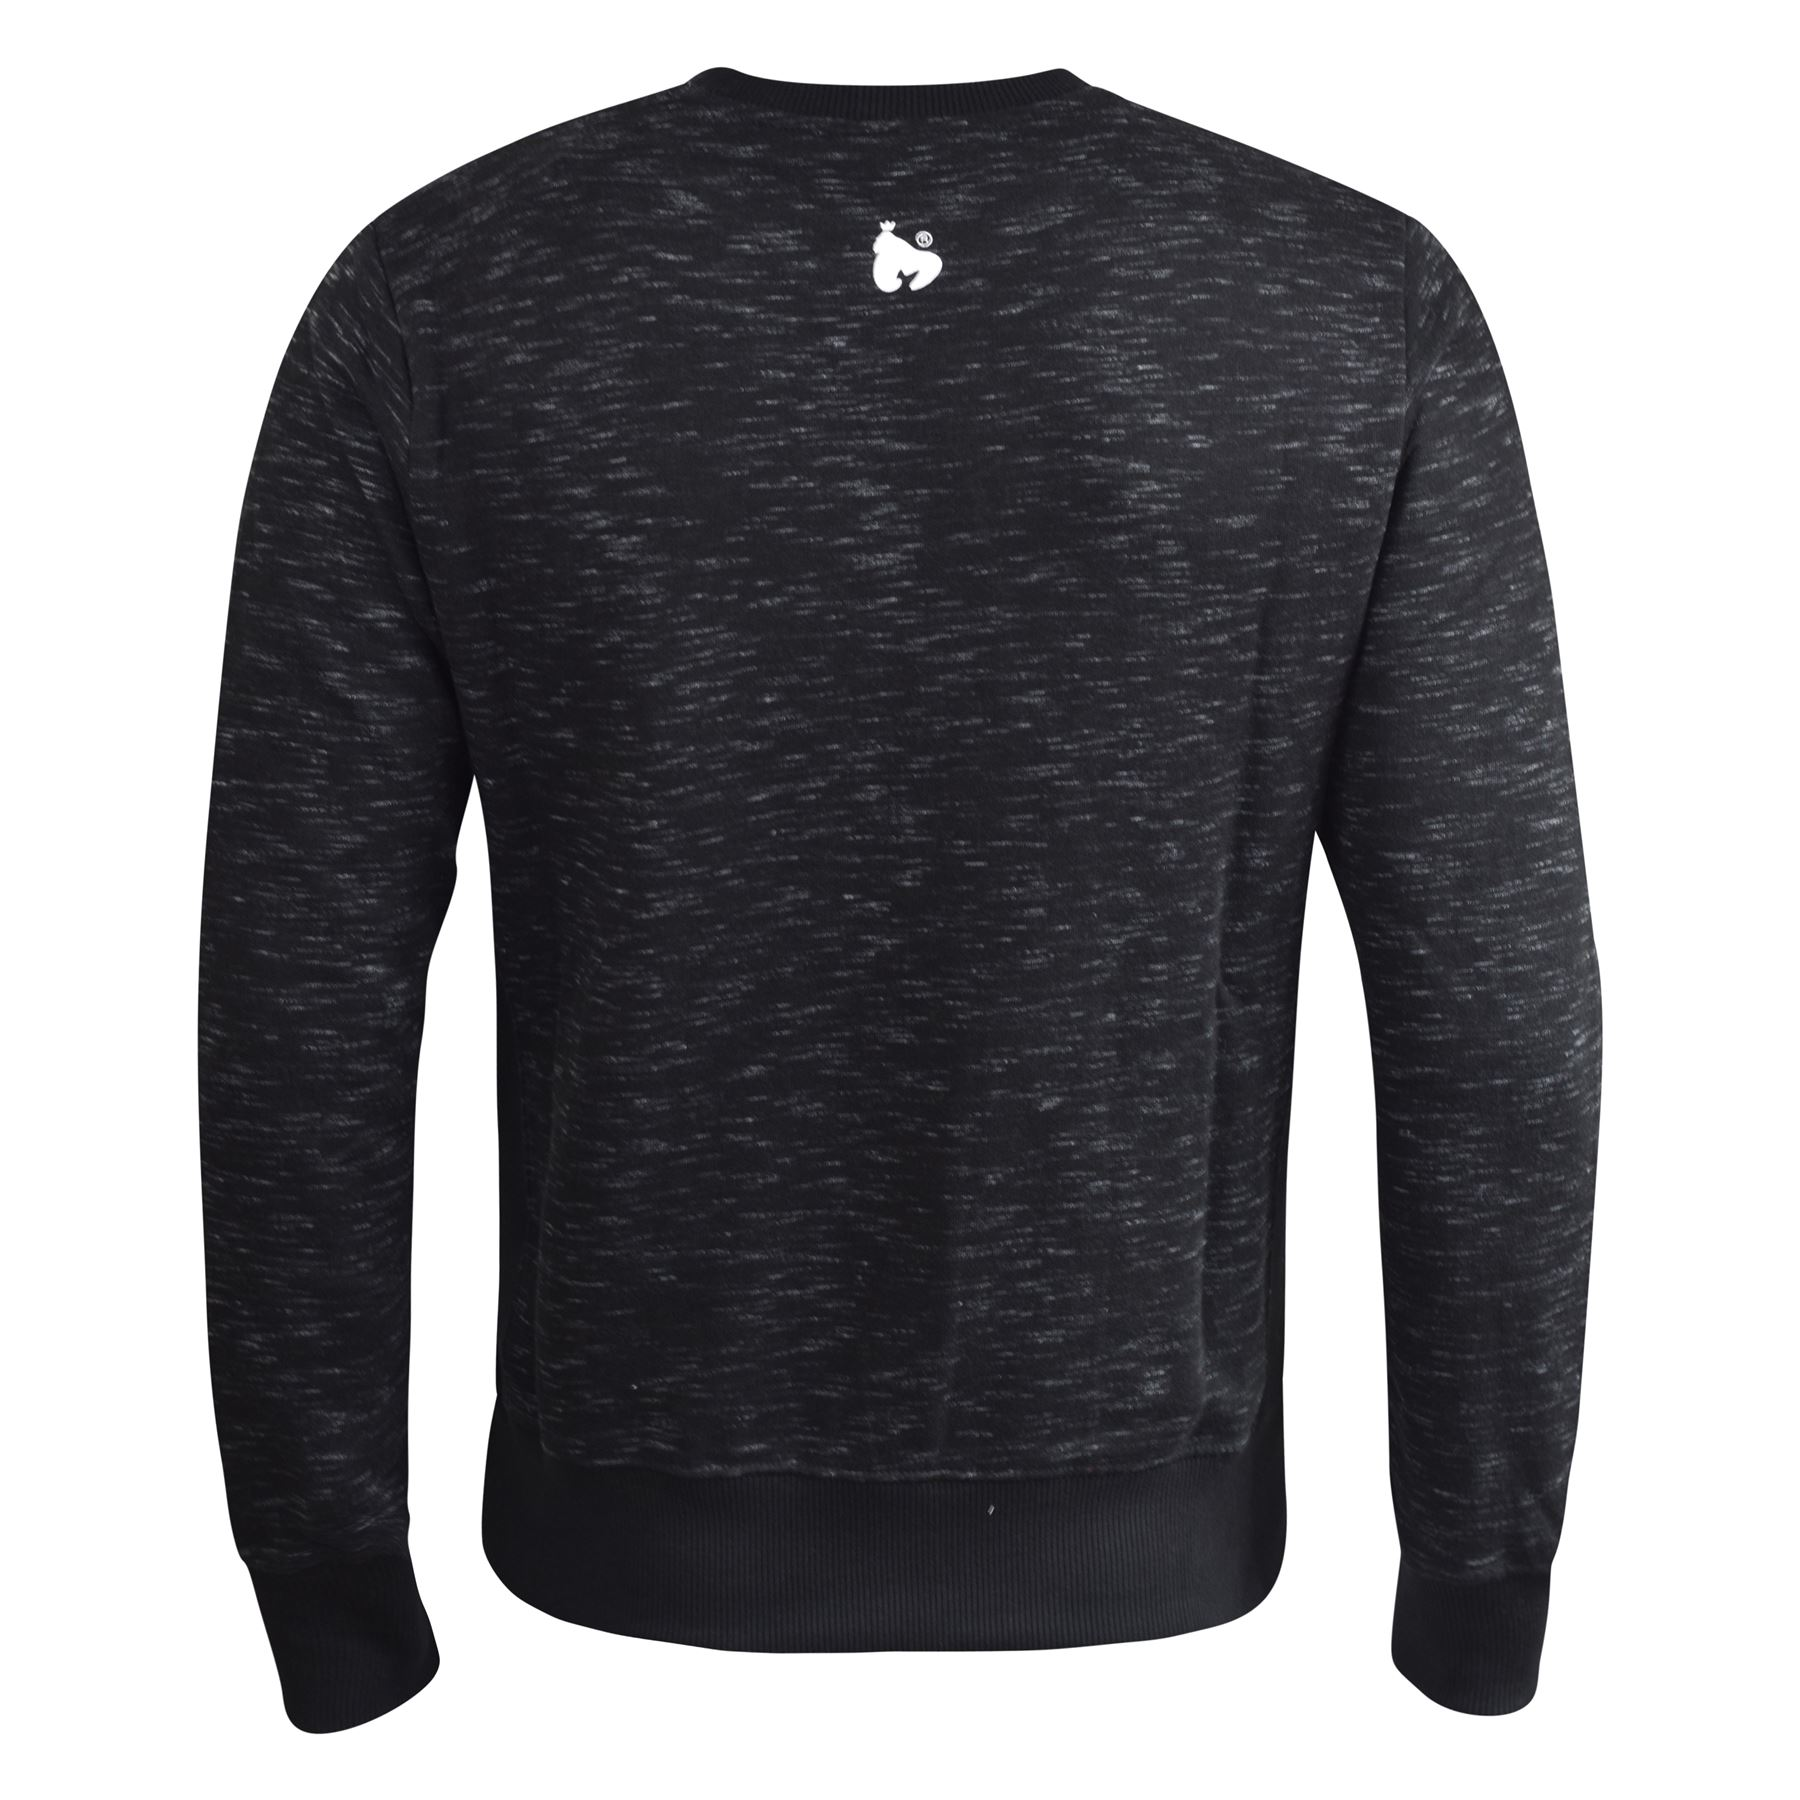 Mens-Jumper-Money-Clothing-Hardway-Crew-Neck-Sweatshirt thumbnail 3